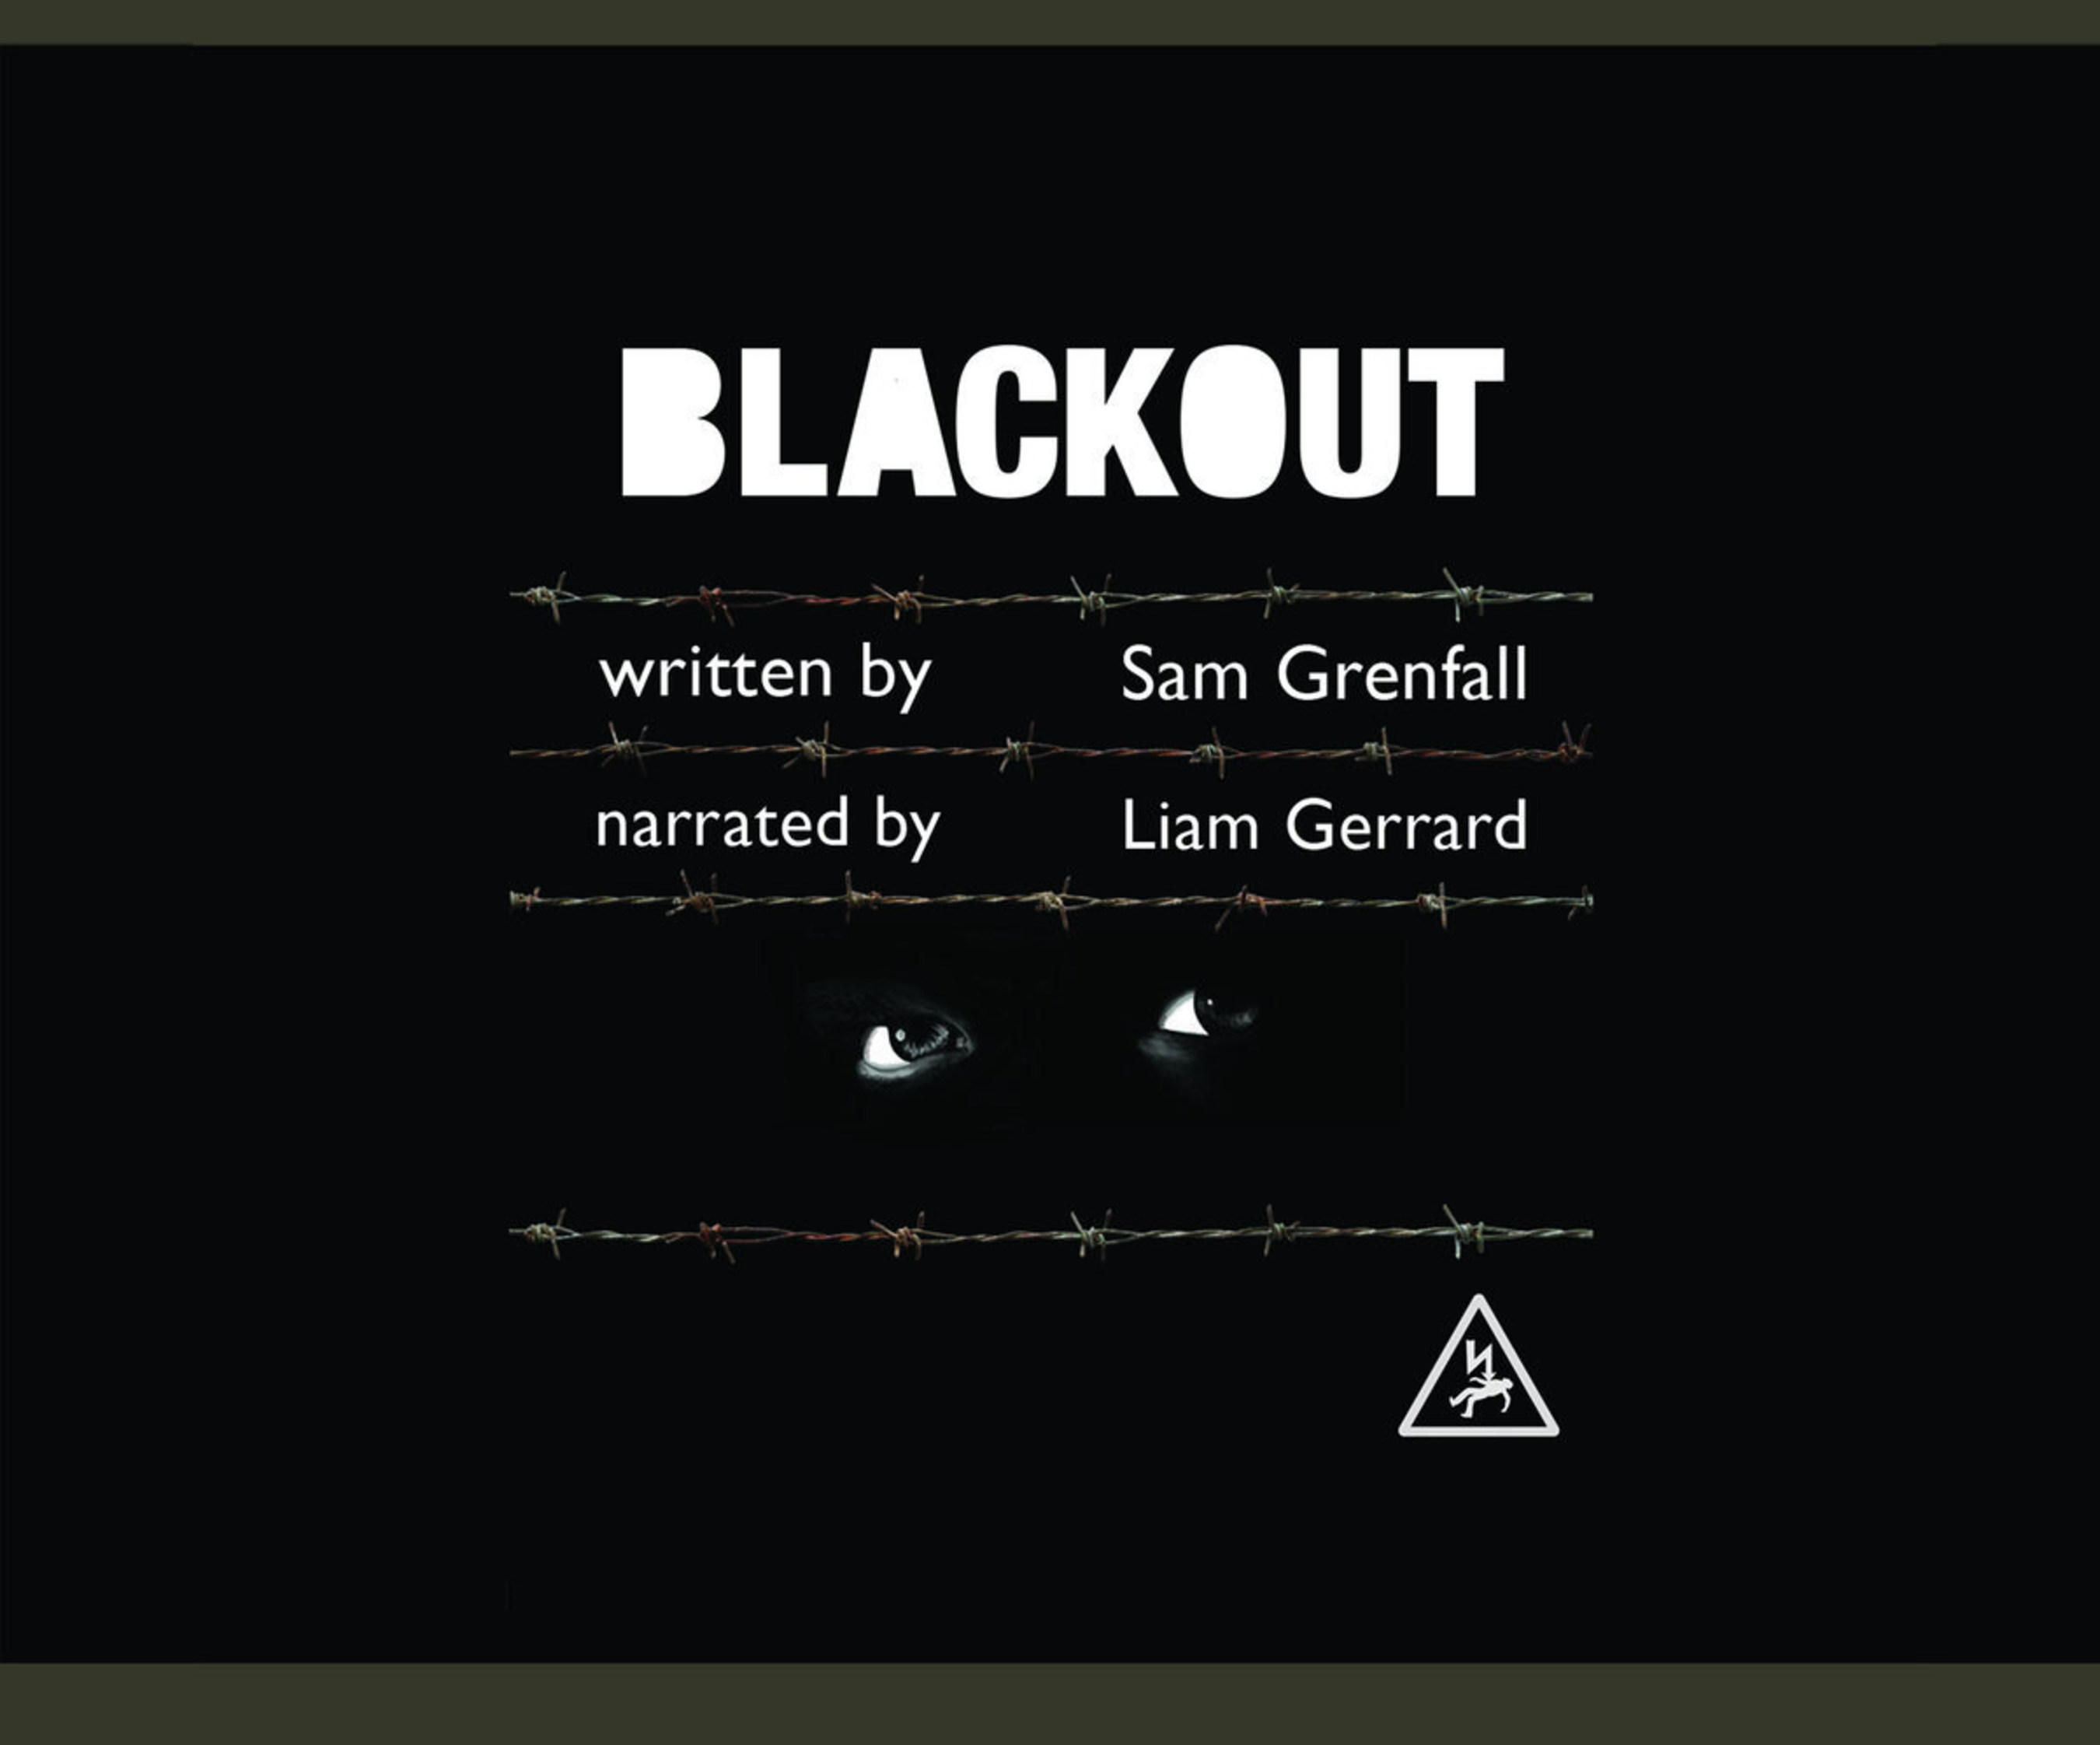 Blackout by Sam Grenfall, cover illustrated by Winnie O'Brien